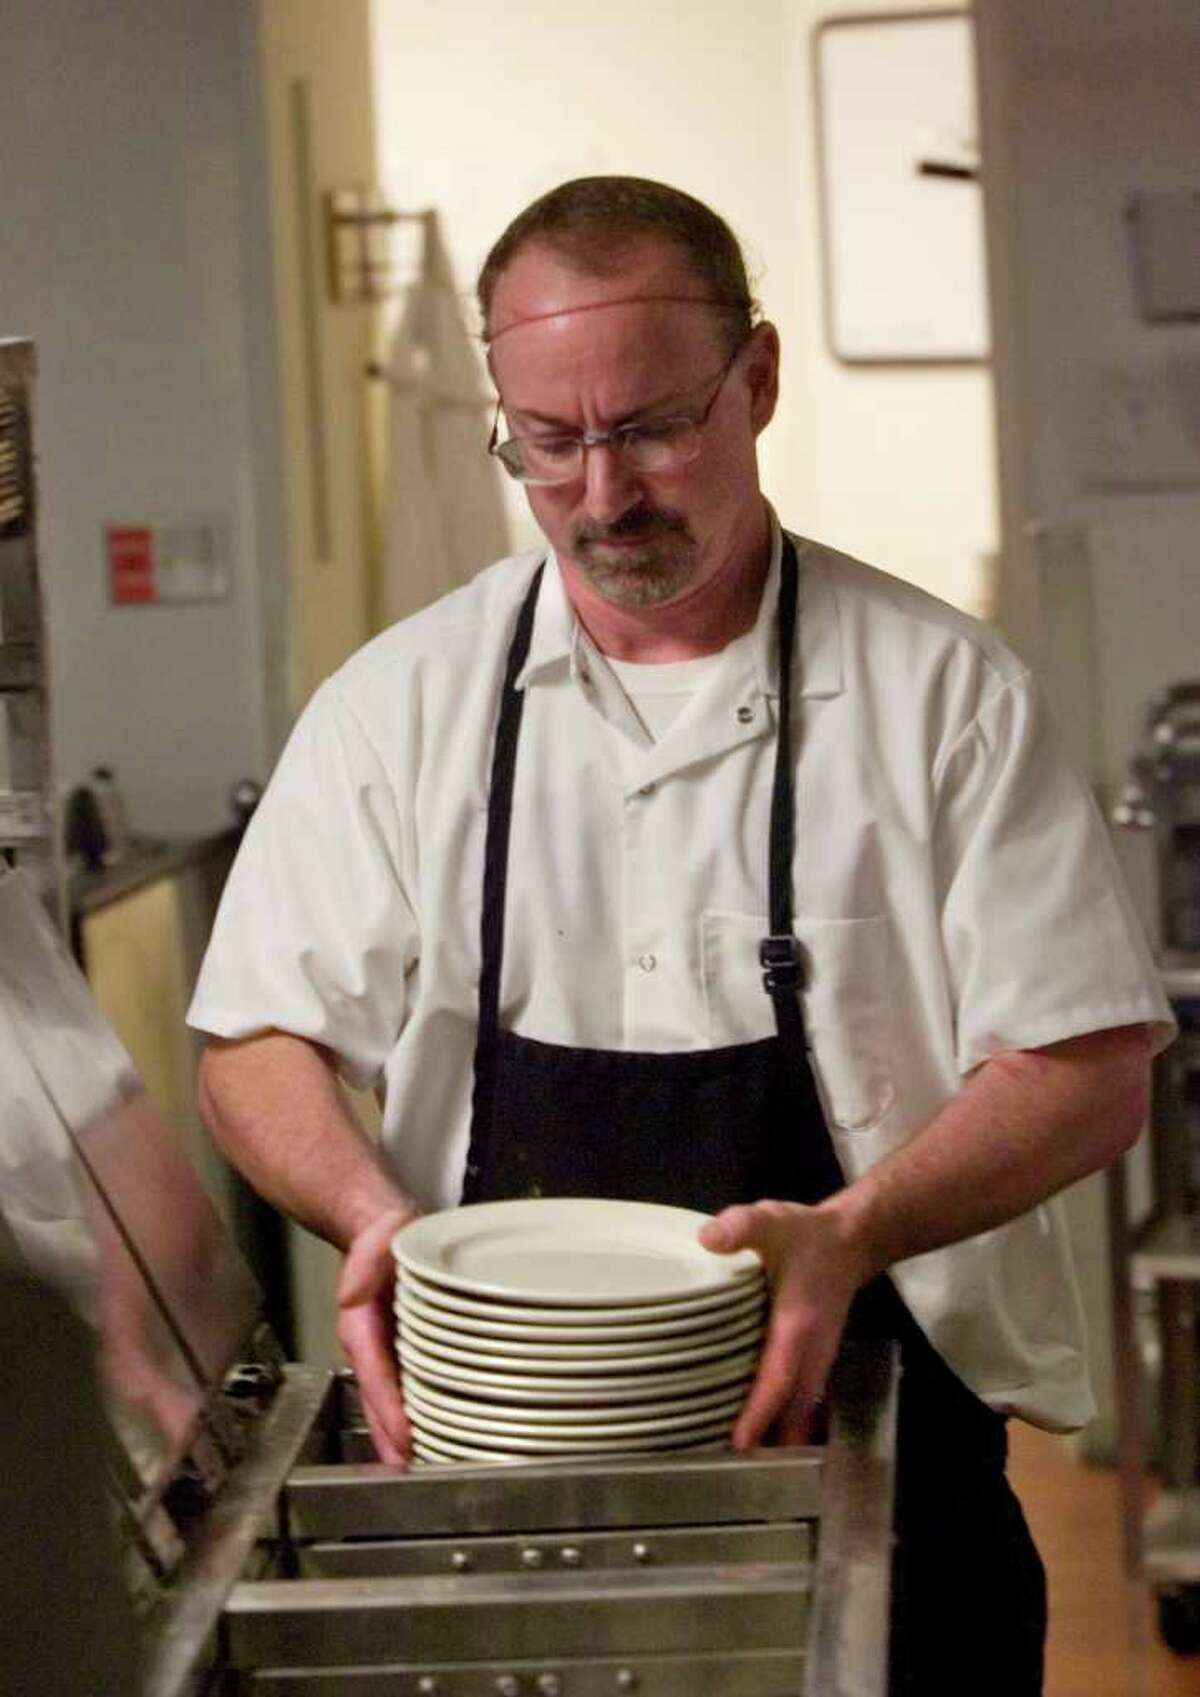 Paul Grewer stacks clean plates at Danbury Hospital on Wednesday, Aug. 10, 2011. The hospital is privatizing all of its food services with an Atlanta-based company, Morrison Management Specialists.